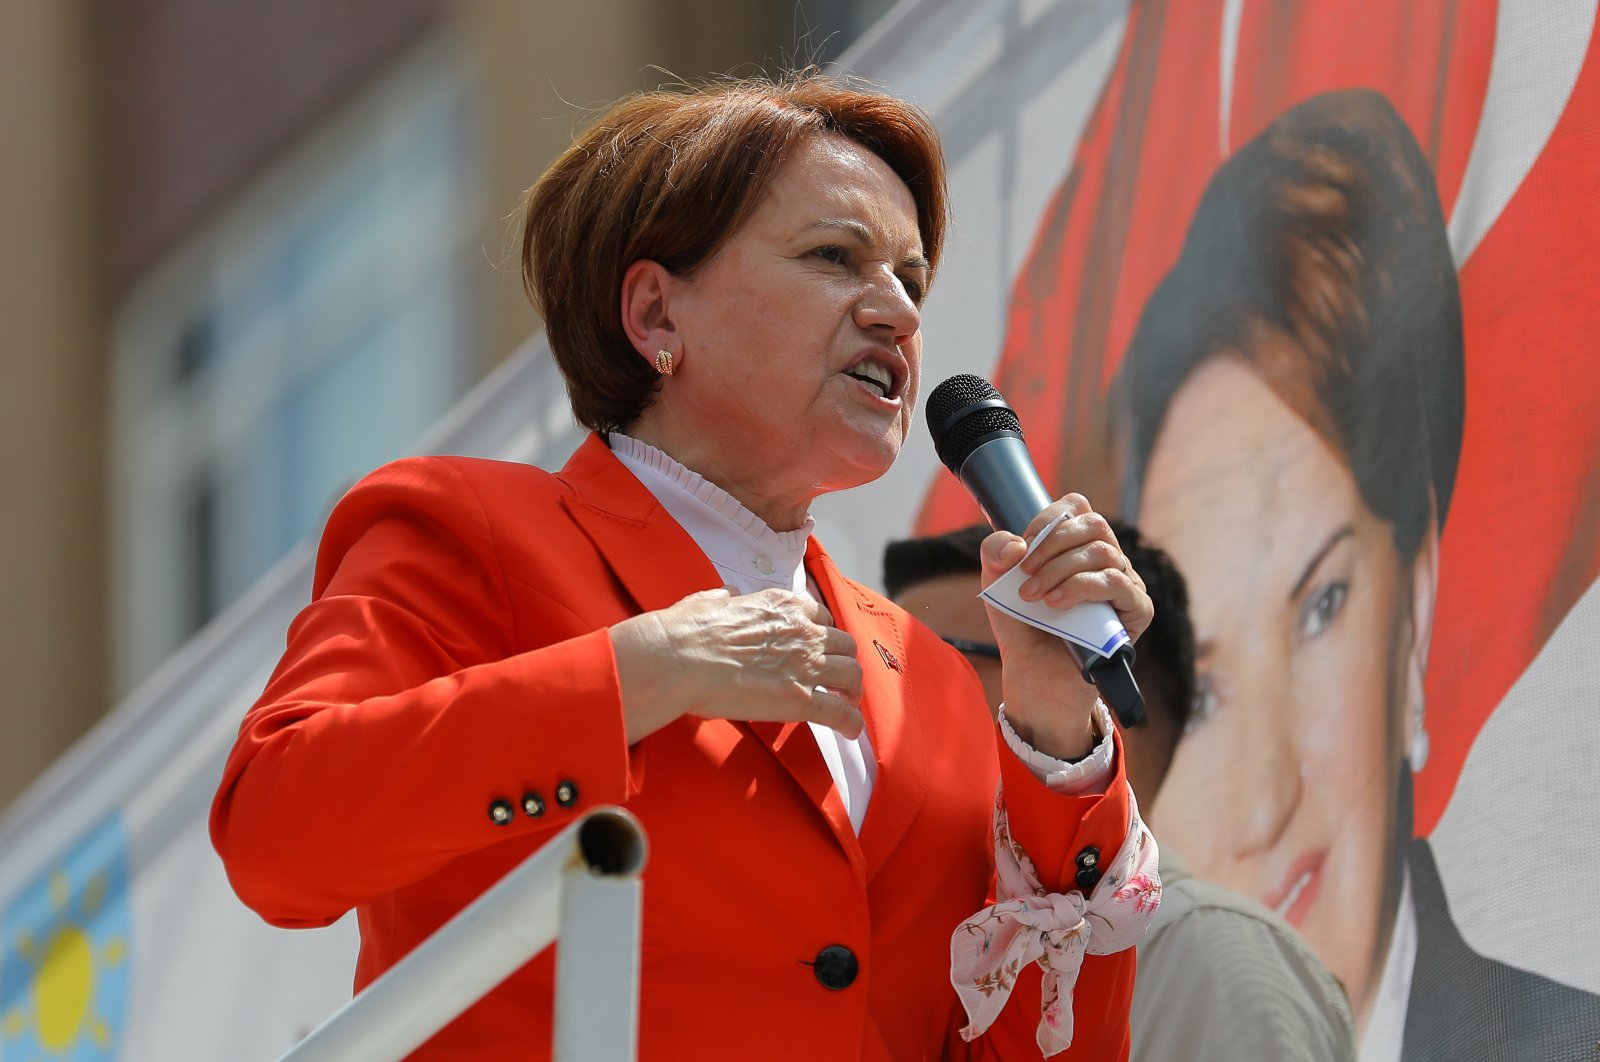 Meral Akşener, chairwoman of the Good Party (IP), speaks during an election rally in Istanbul, Turkey, June 22, 2018. (Reuters File Photo)